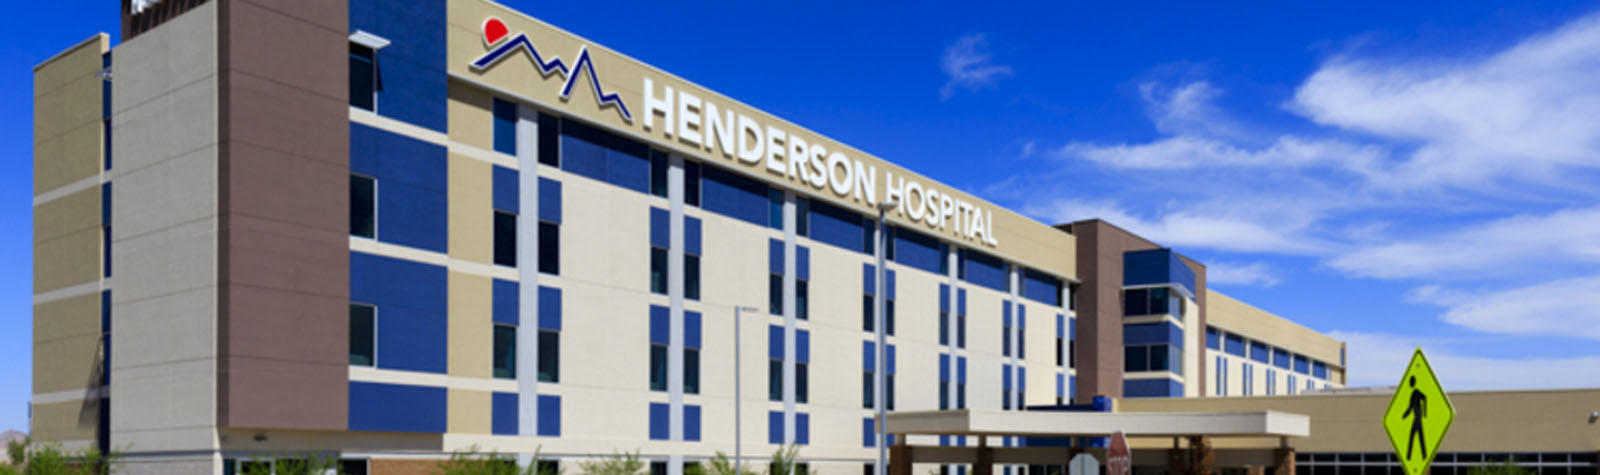 Henderson Hospital Earns Prestigious National Award for Quality